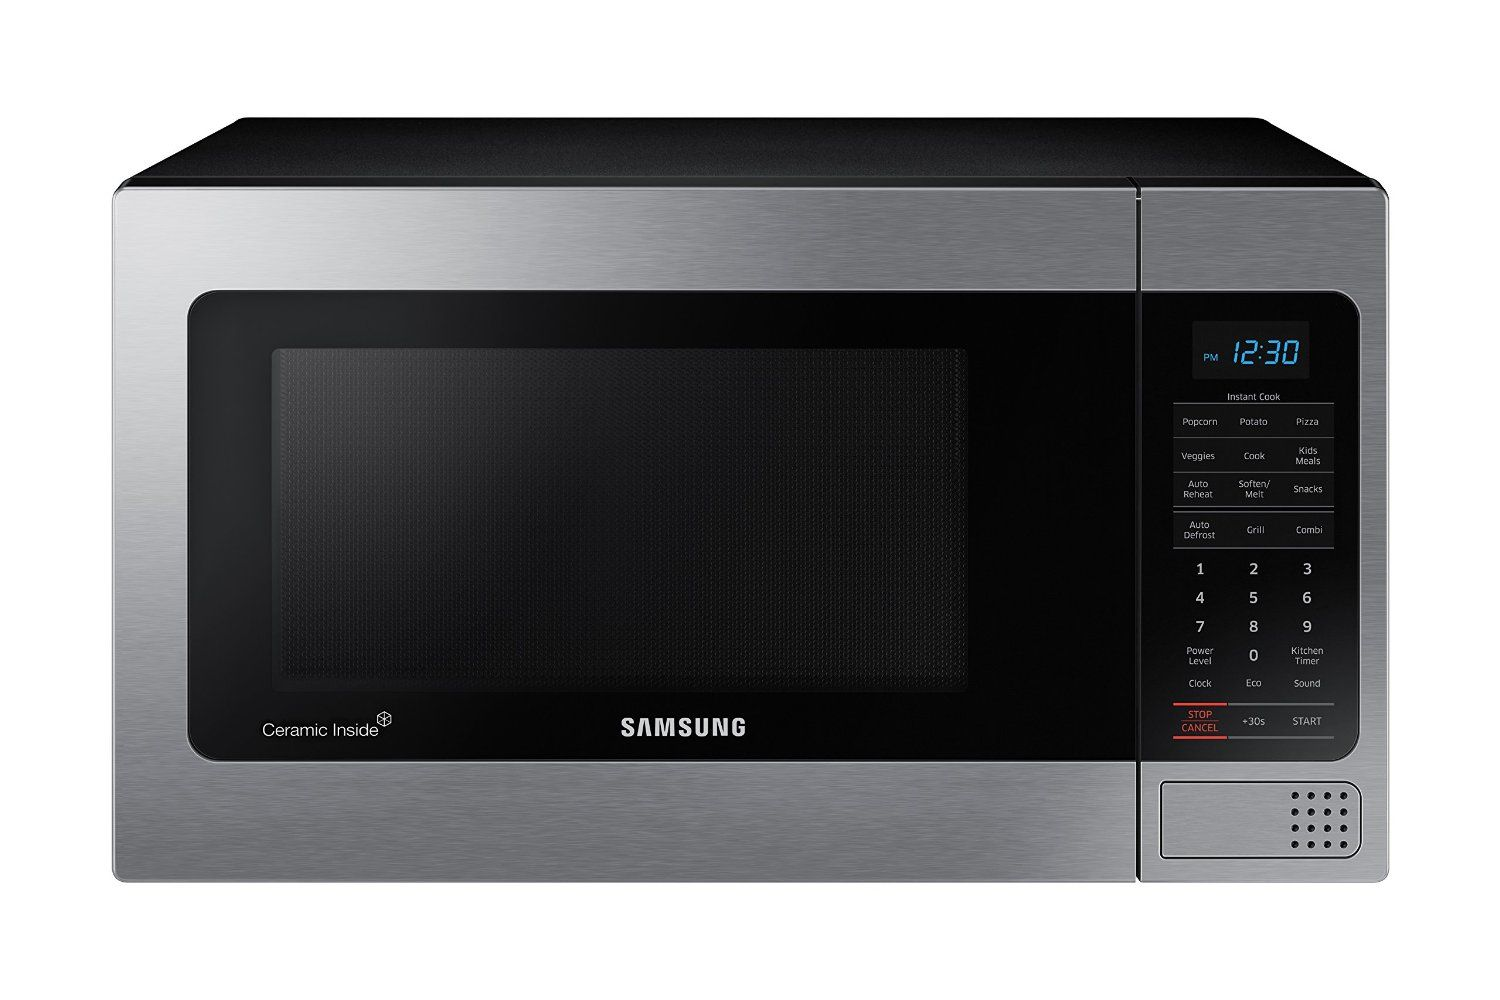 Samsung Counter Top Microwave 1 1 Cubic Feet Black With Mirror Finish This Is An Countertop Microwave Countertop Microwave Oven Stainless Steel Microwave